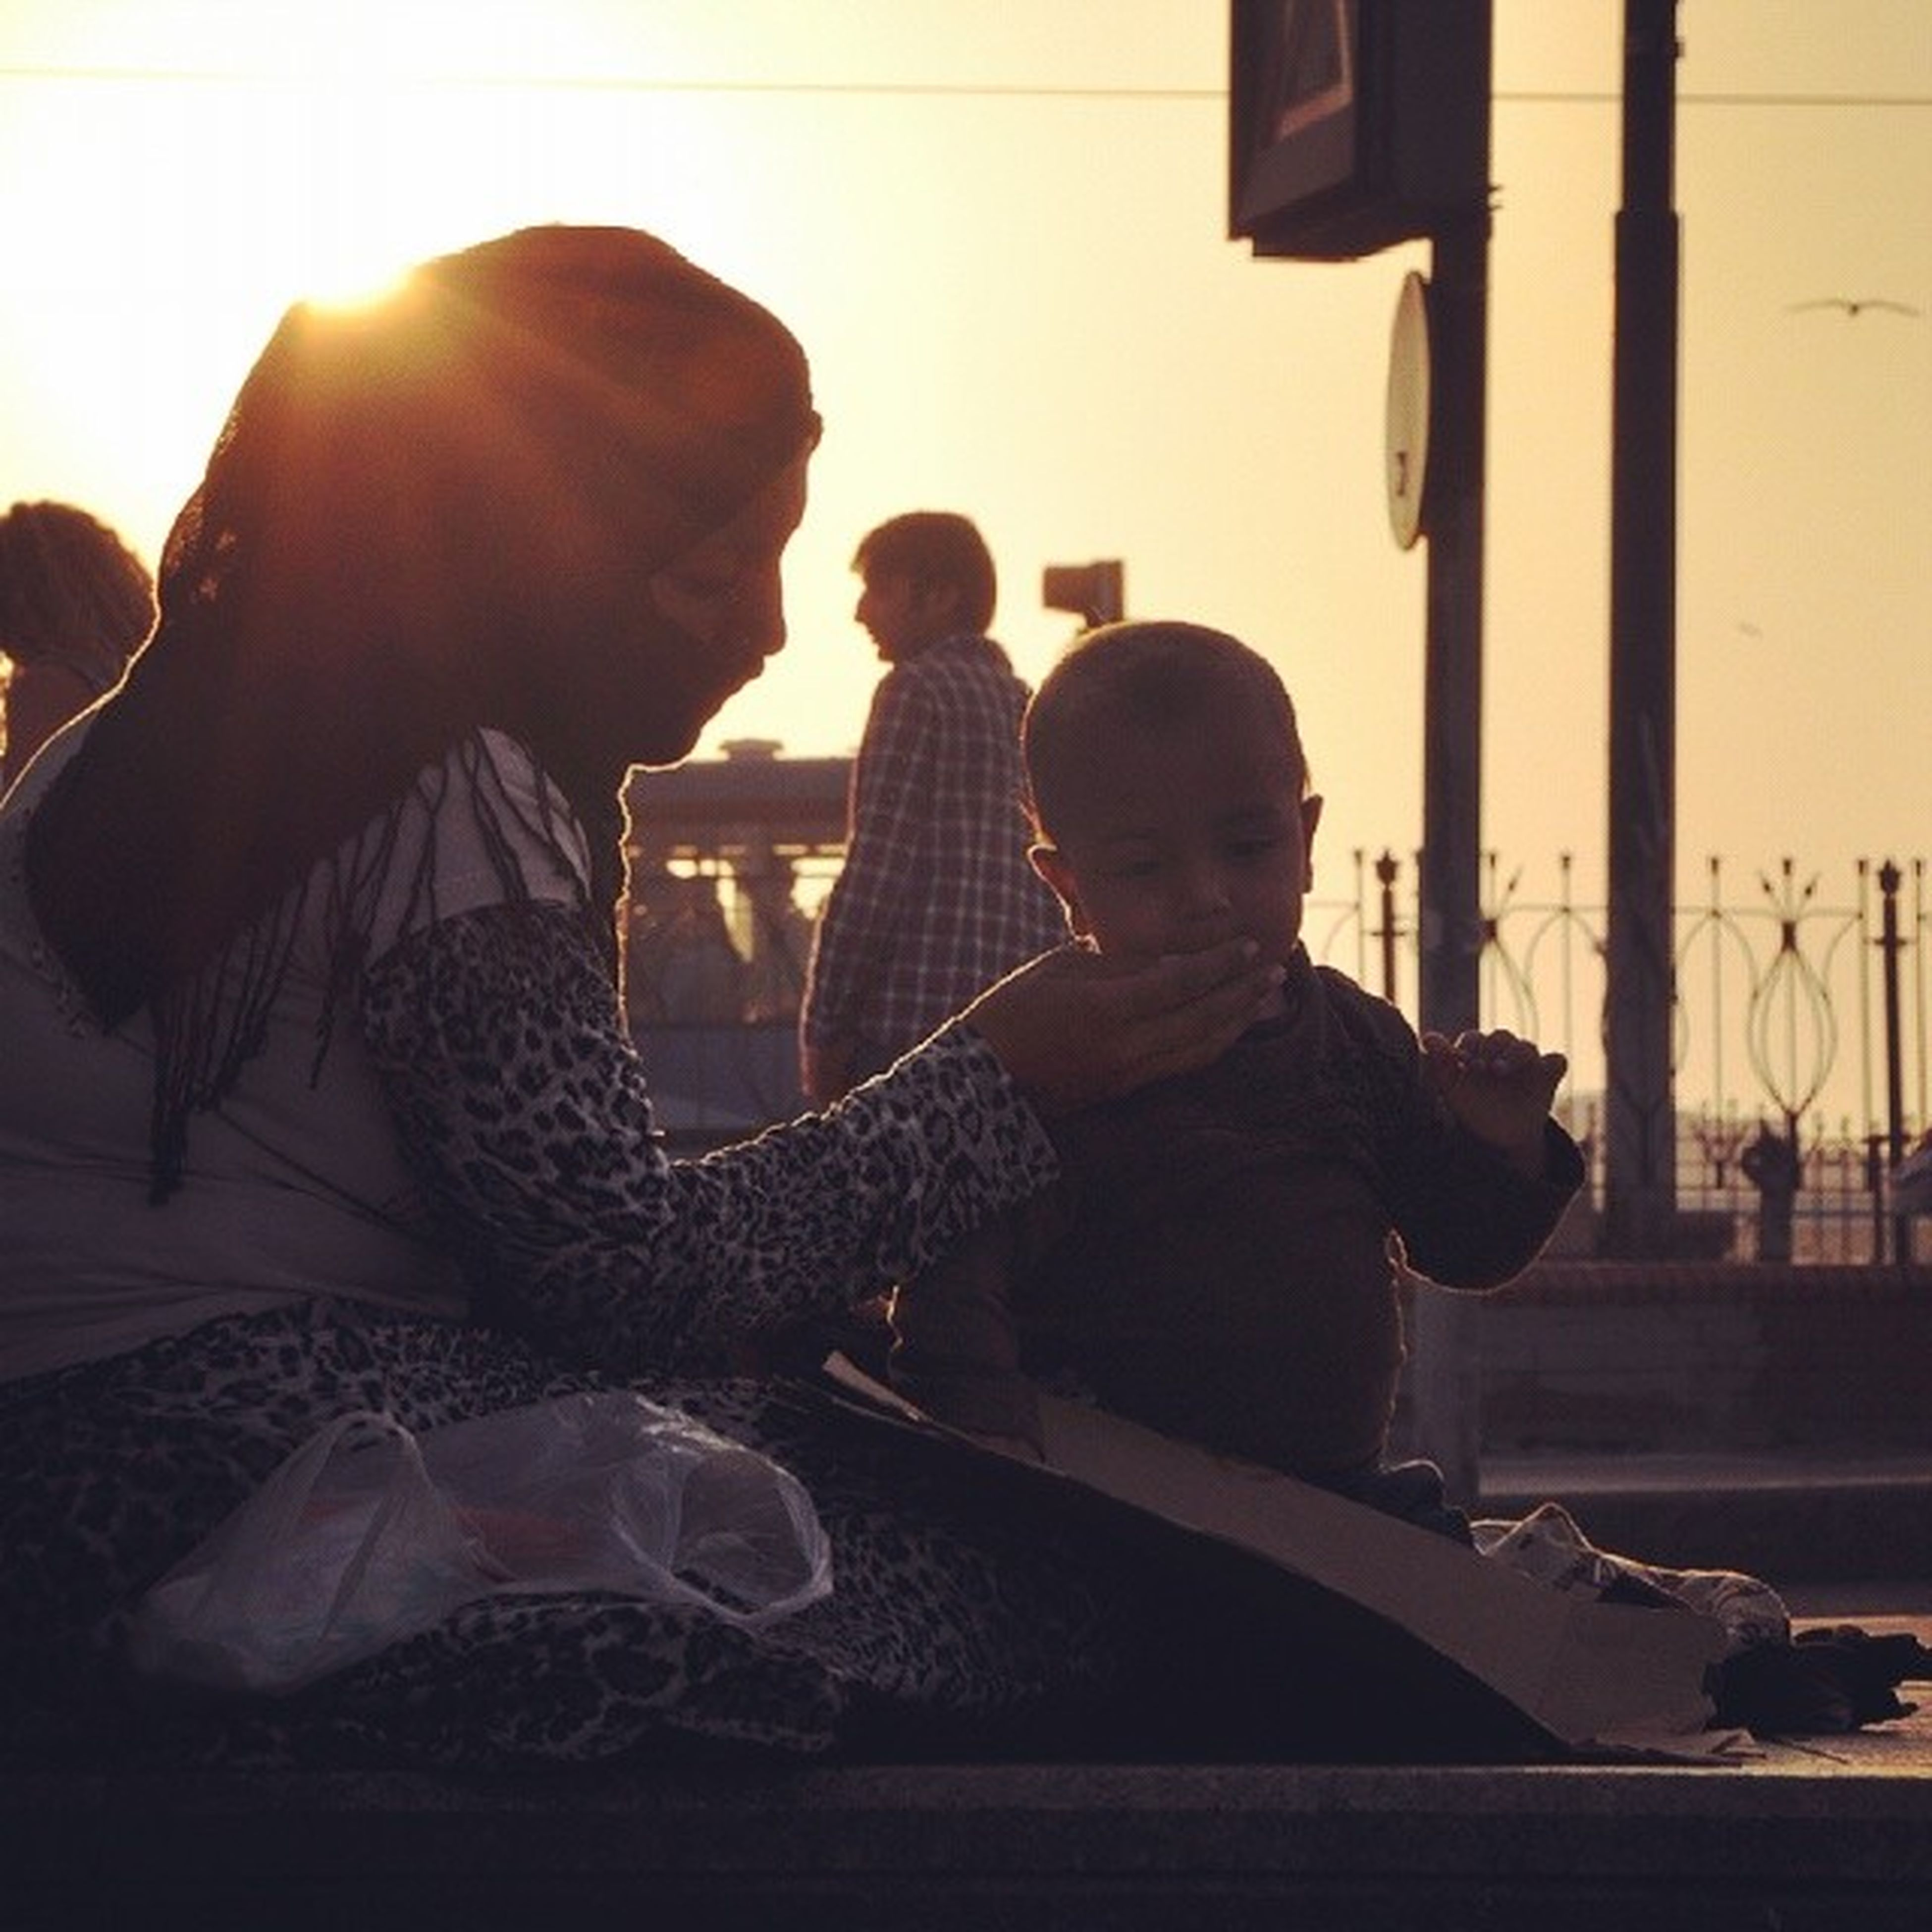 lifestyles, leisure activity, sitting, sunlight, men, sun, sunbeam, rear view, casual clothing, togetherness, silhouette, person, full length, relaxation, sunset, lens flare, side view